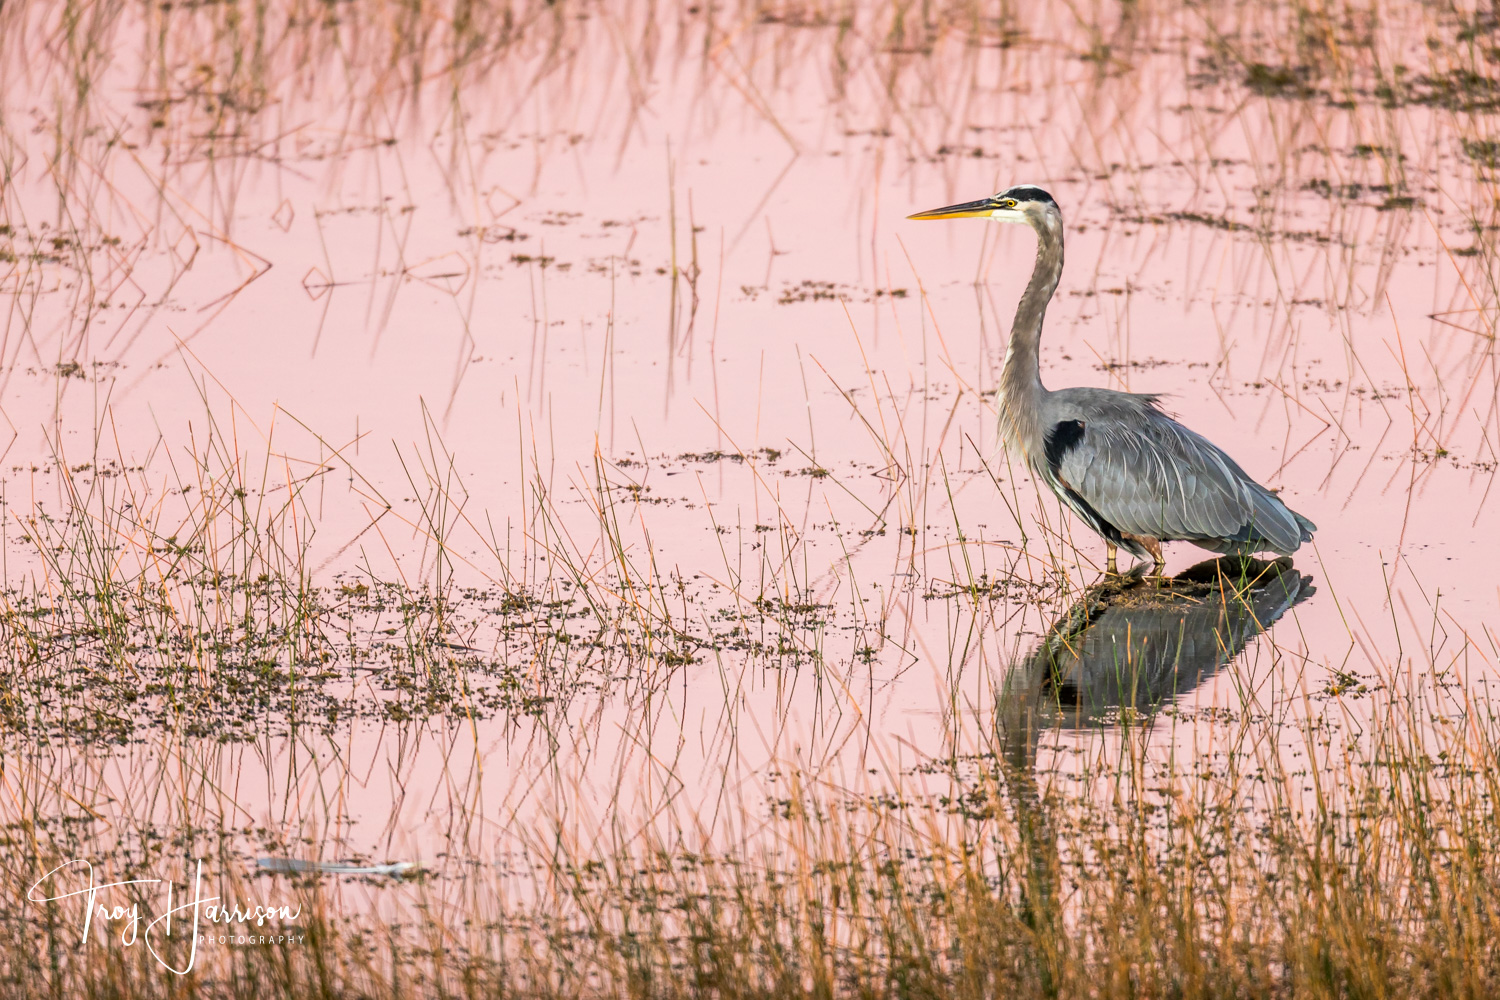 1 - Great Blue Heron, Everglades, Nov. 2018, img 520.jpg